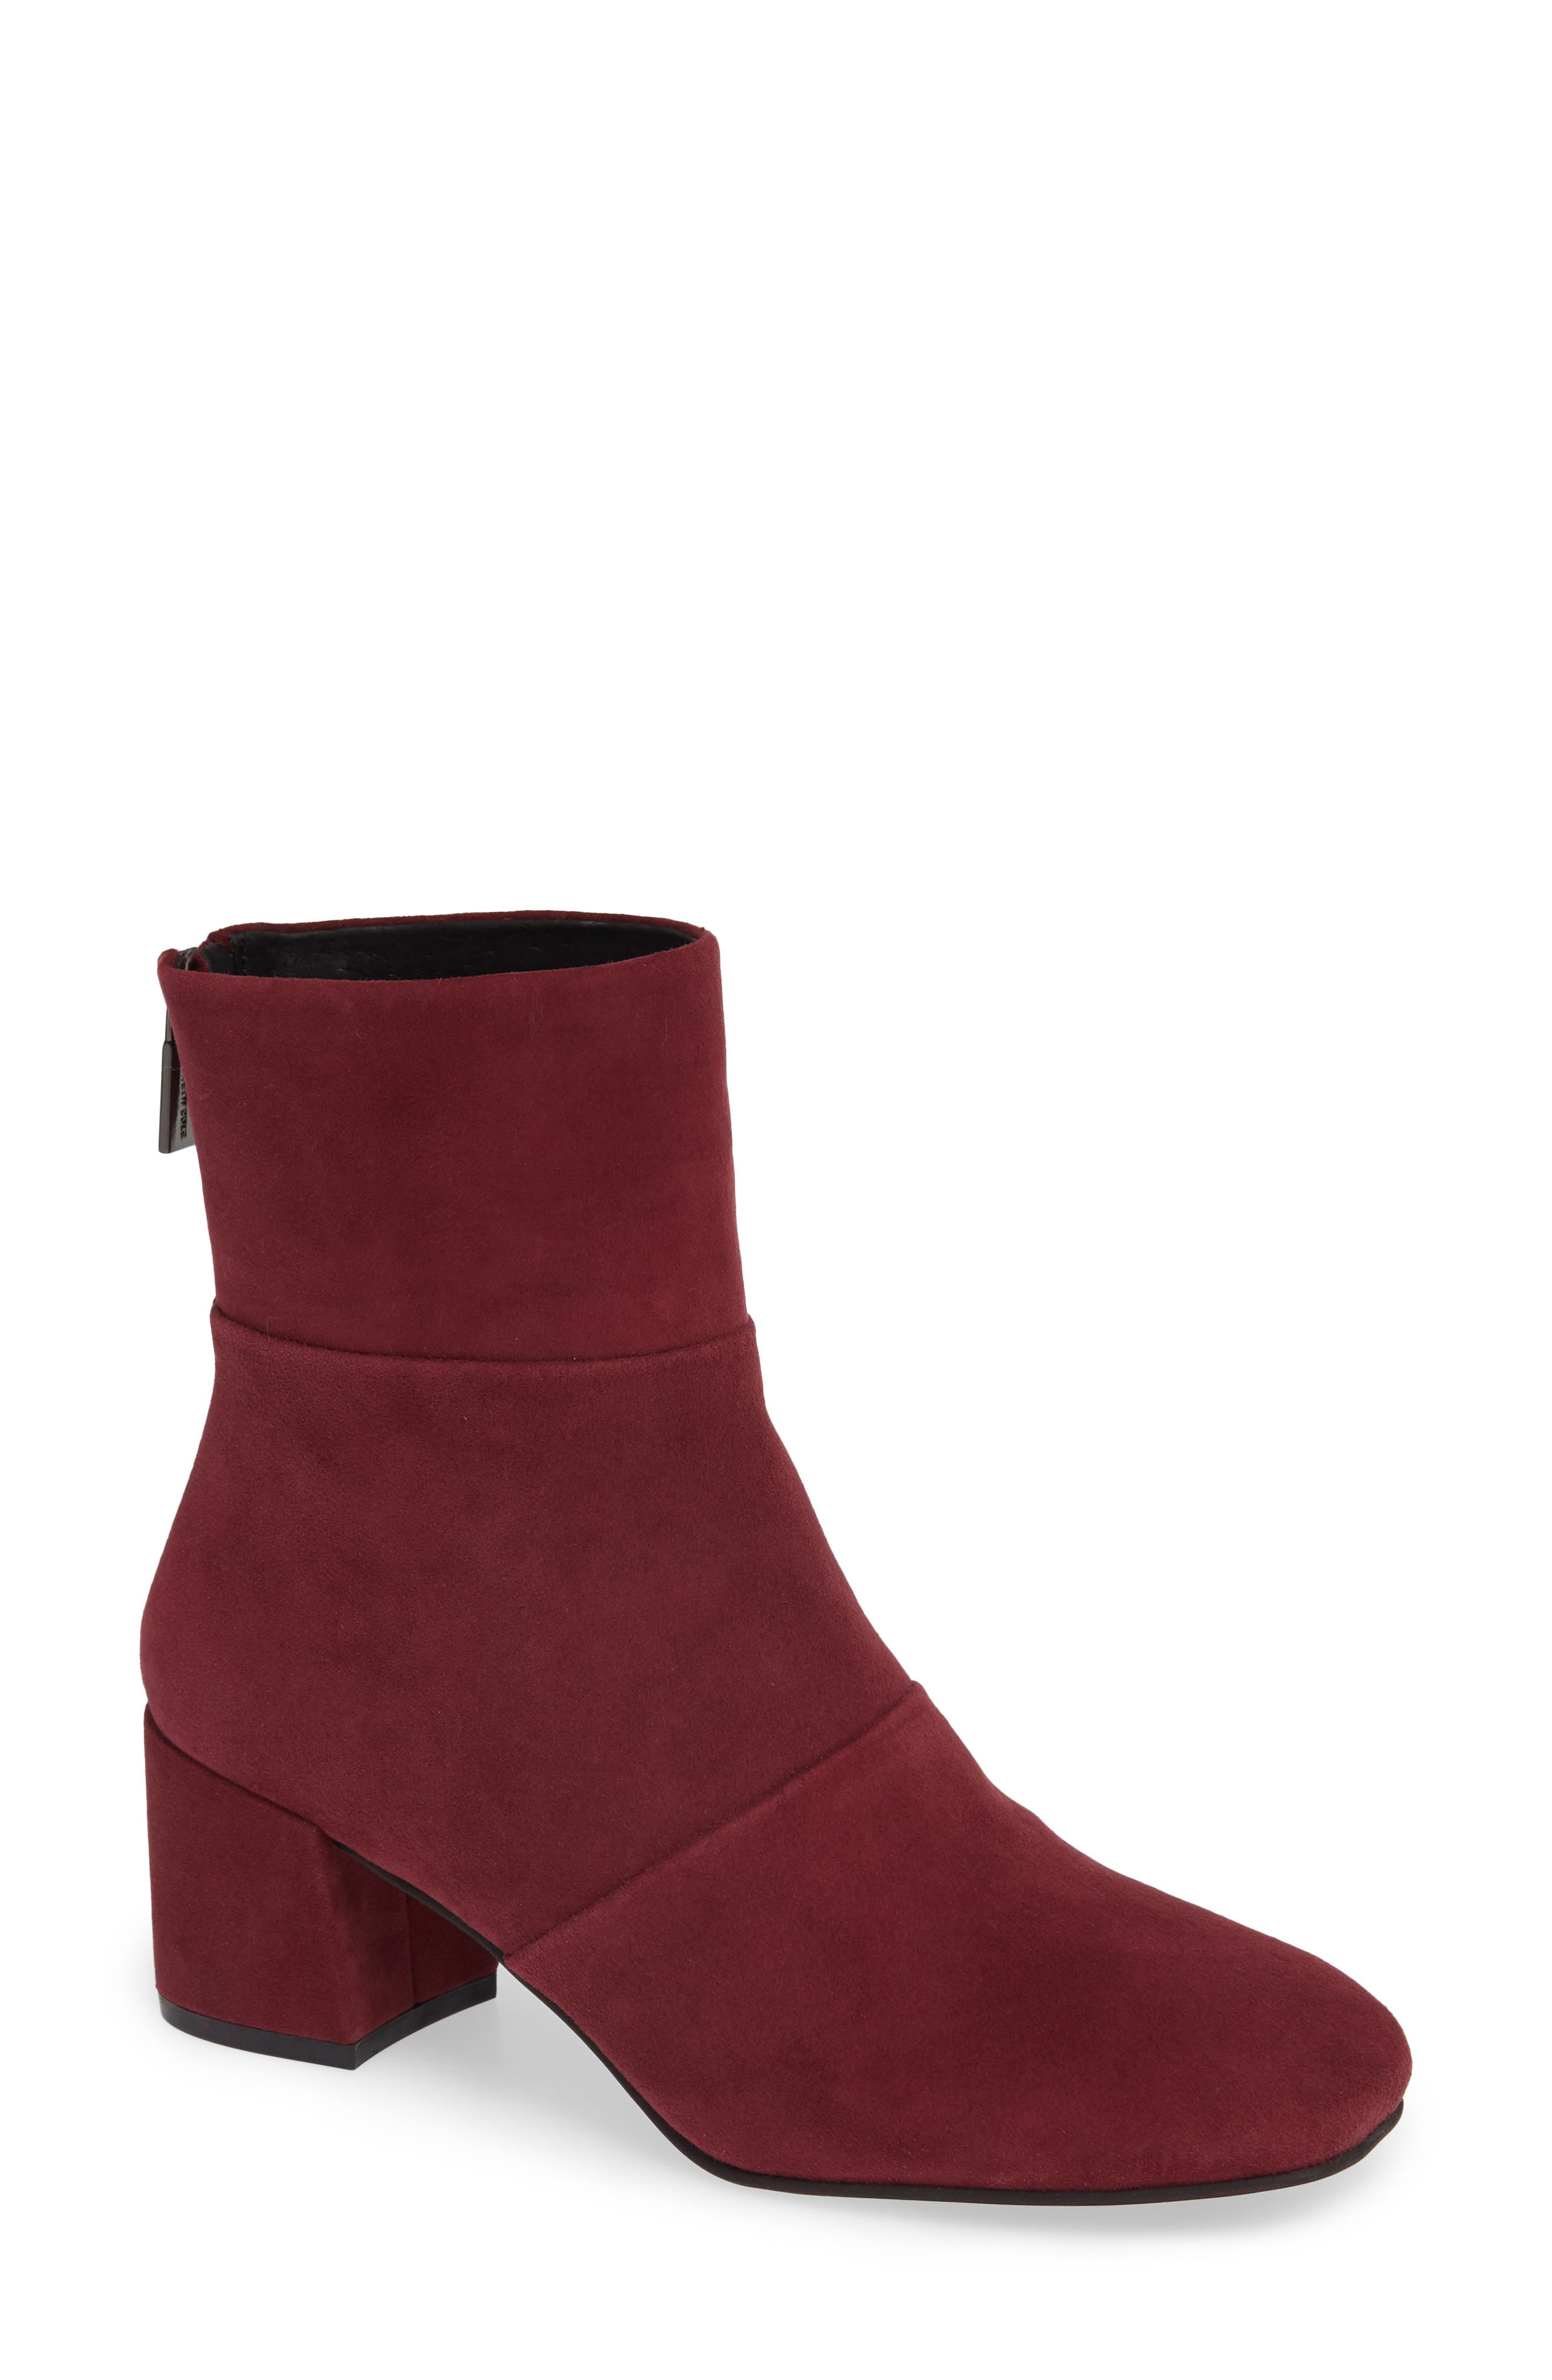 Kenneth Cole New York Eryc Bootie